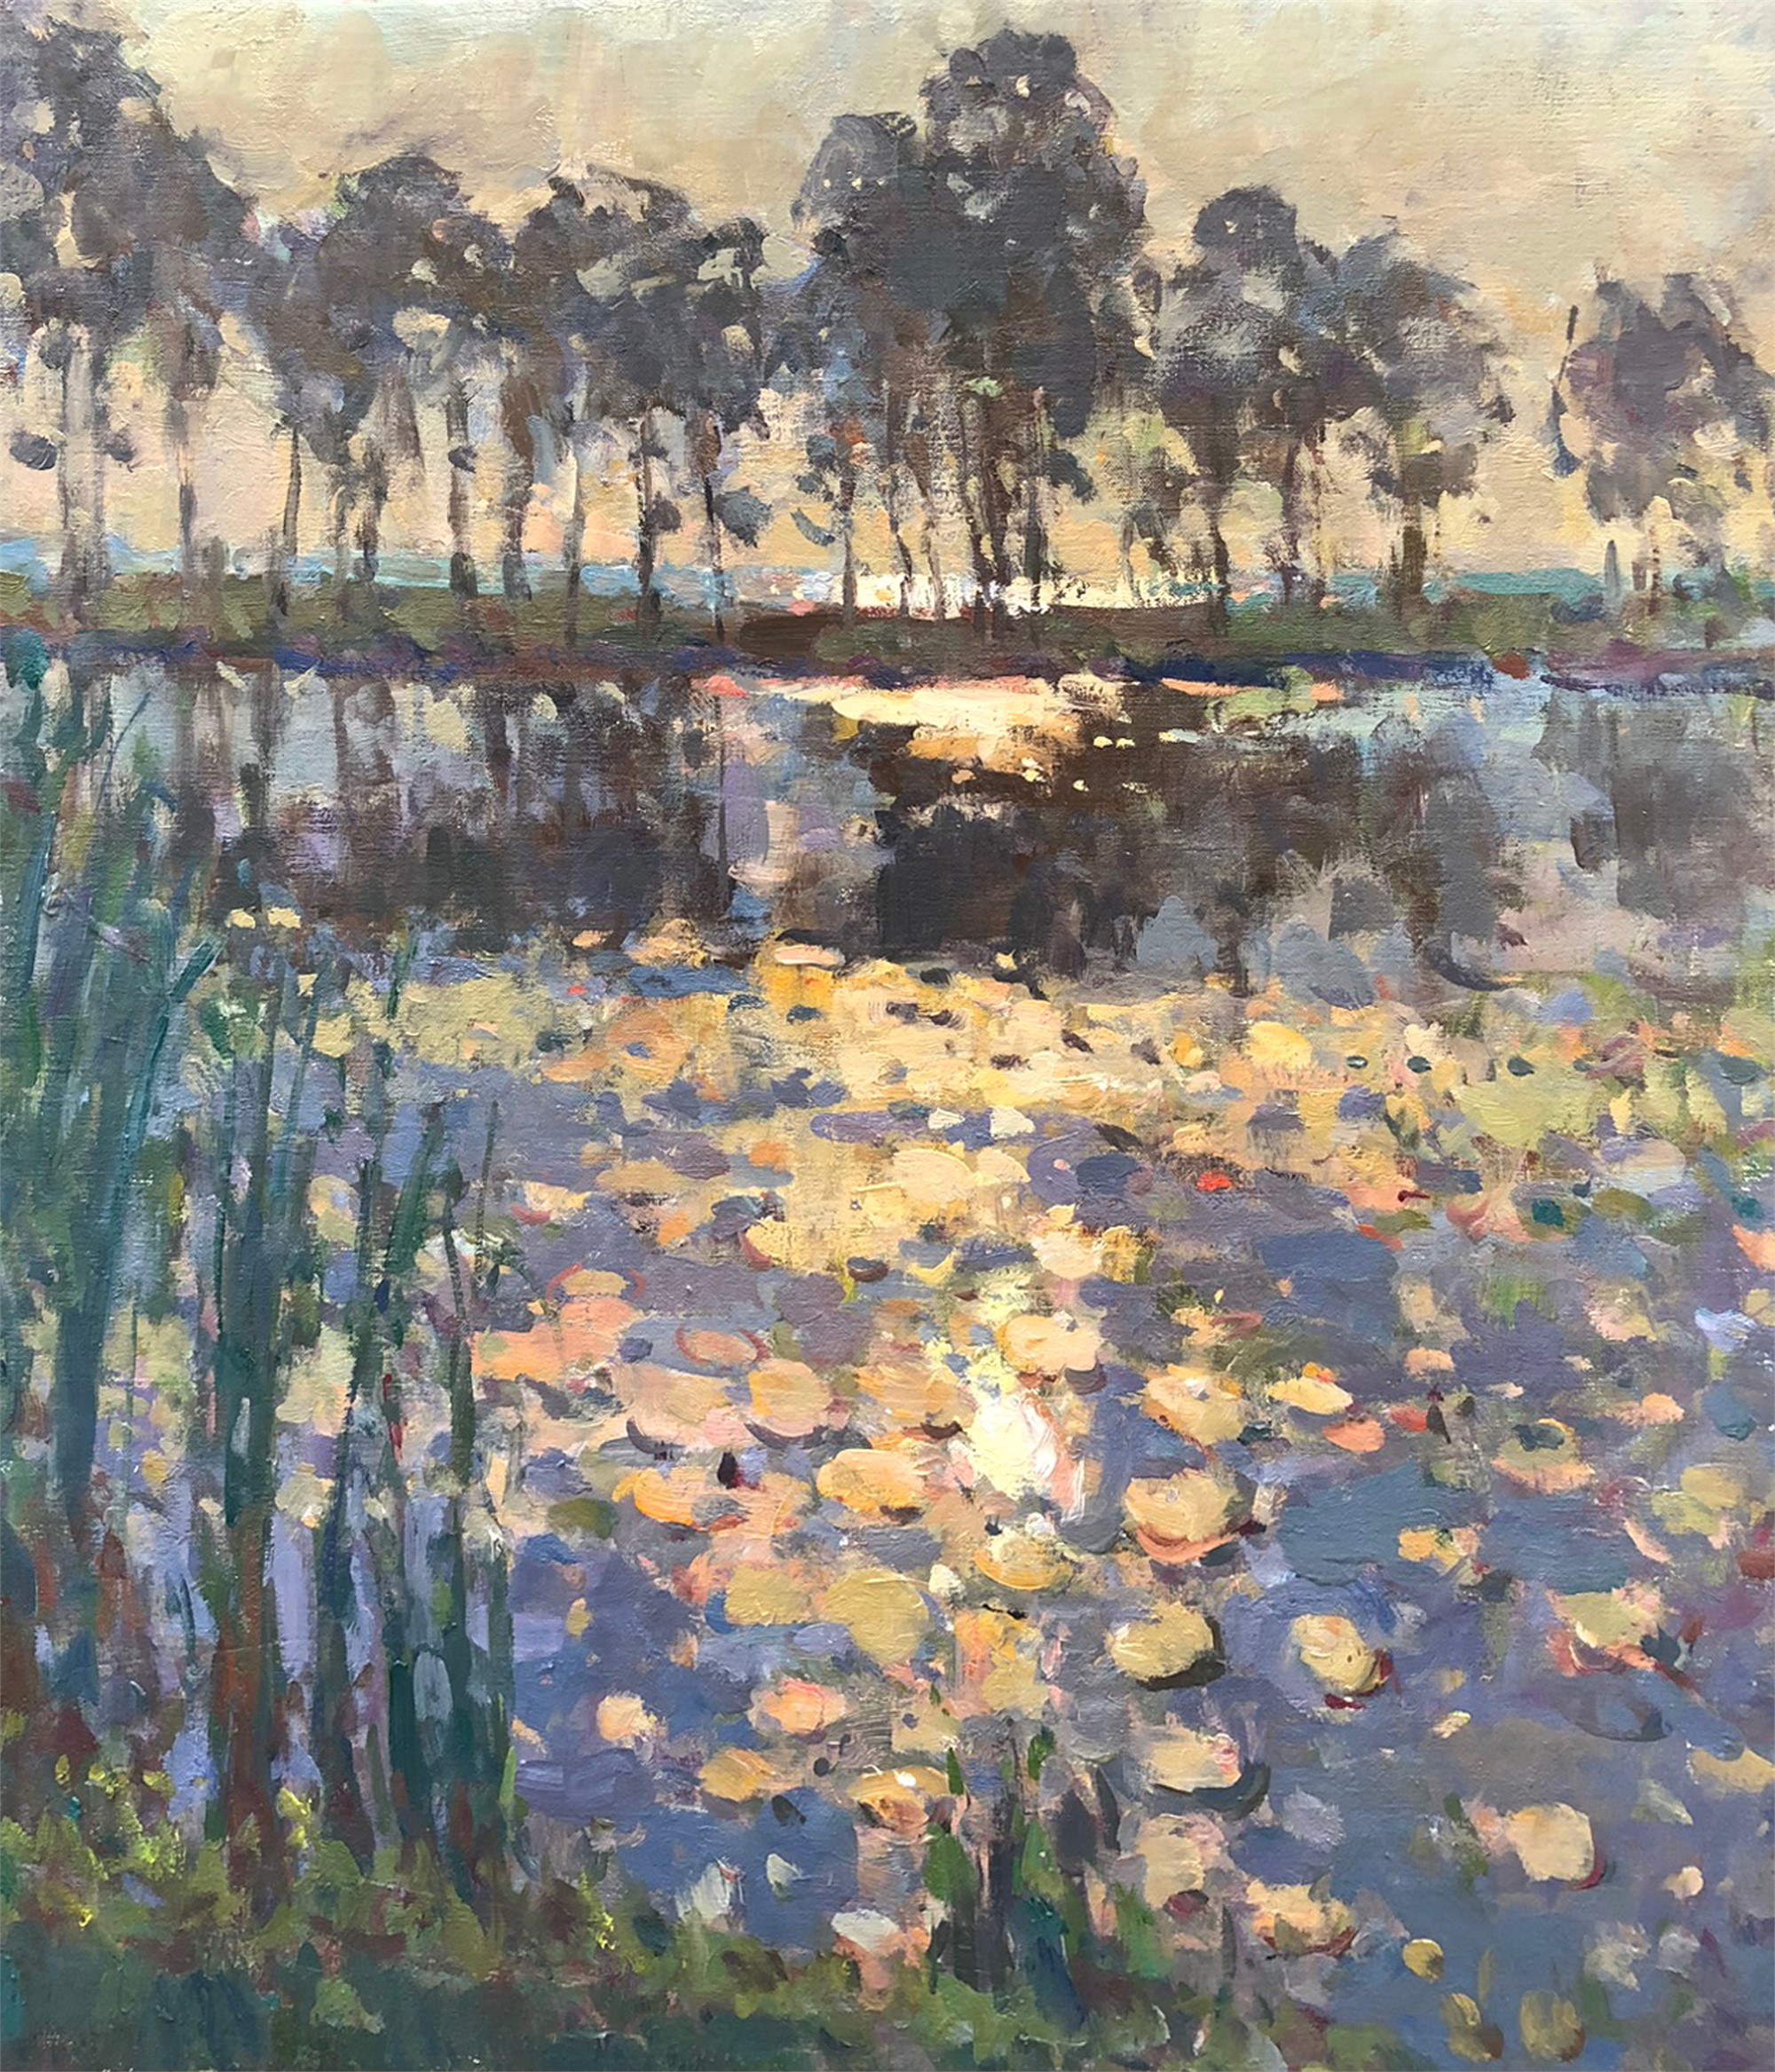 Gleaming Waterlilies by Richard Oversmith